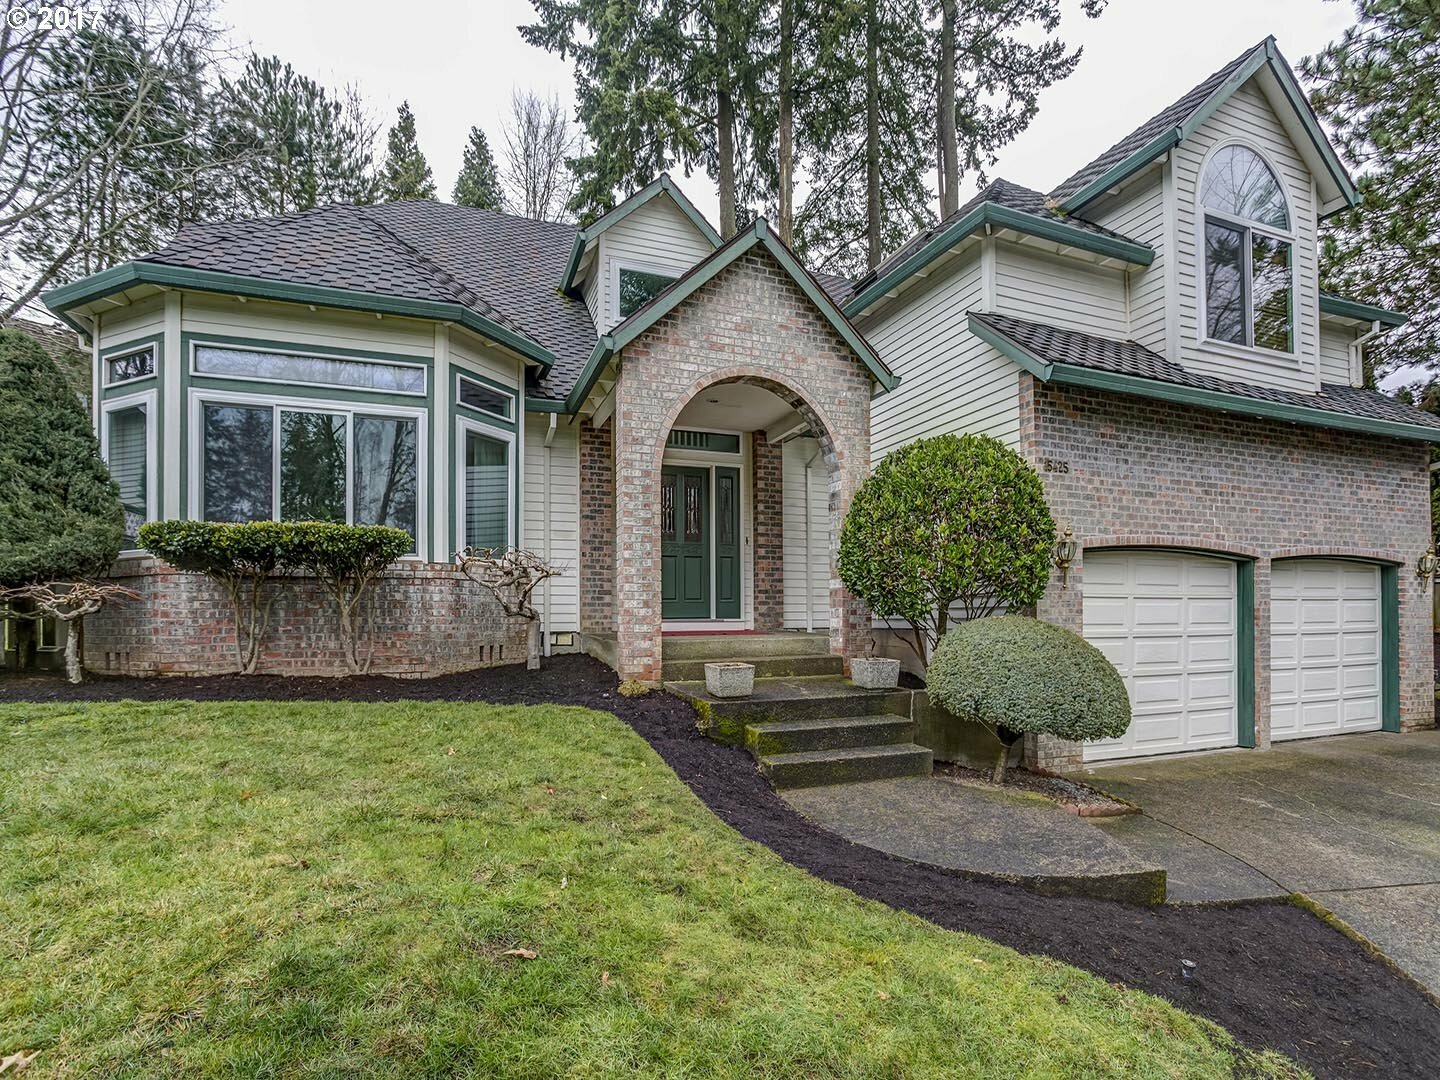 15425 Sw Heron Ct, Beaverton, OR - USA (photo 1)